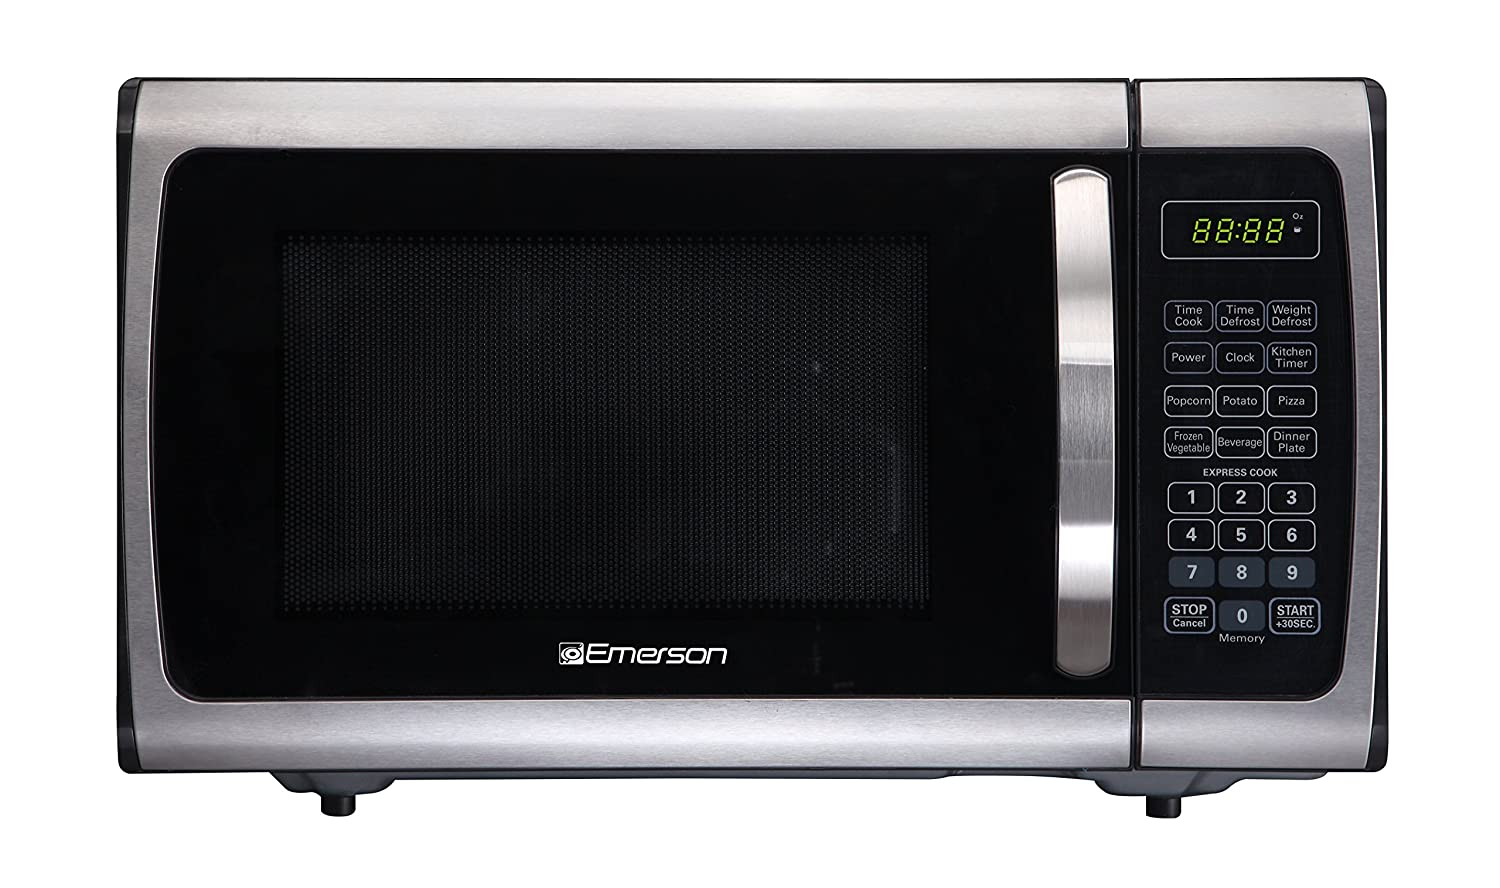 Emerson Radio Emerson ER105005 Single Microwave Oven - Stainless Steel, Black 0.9